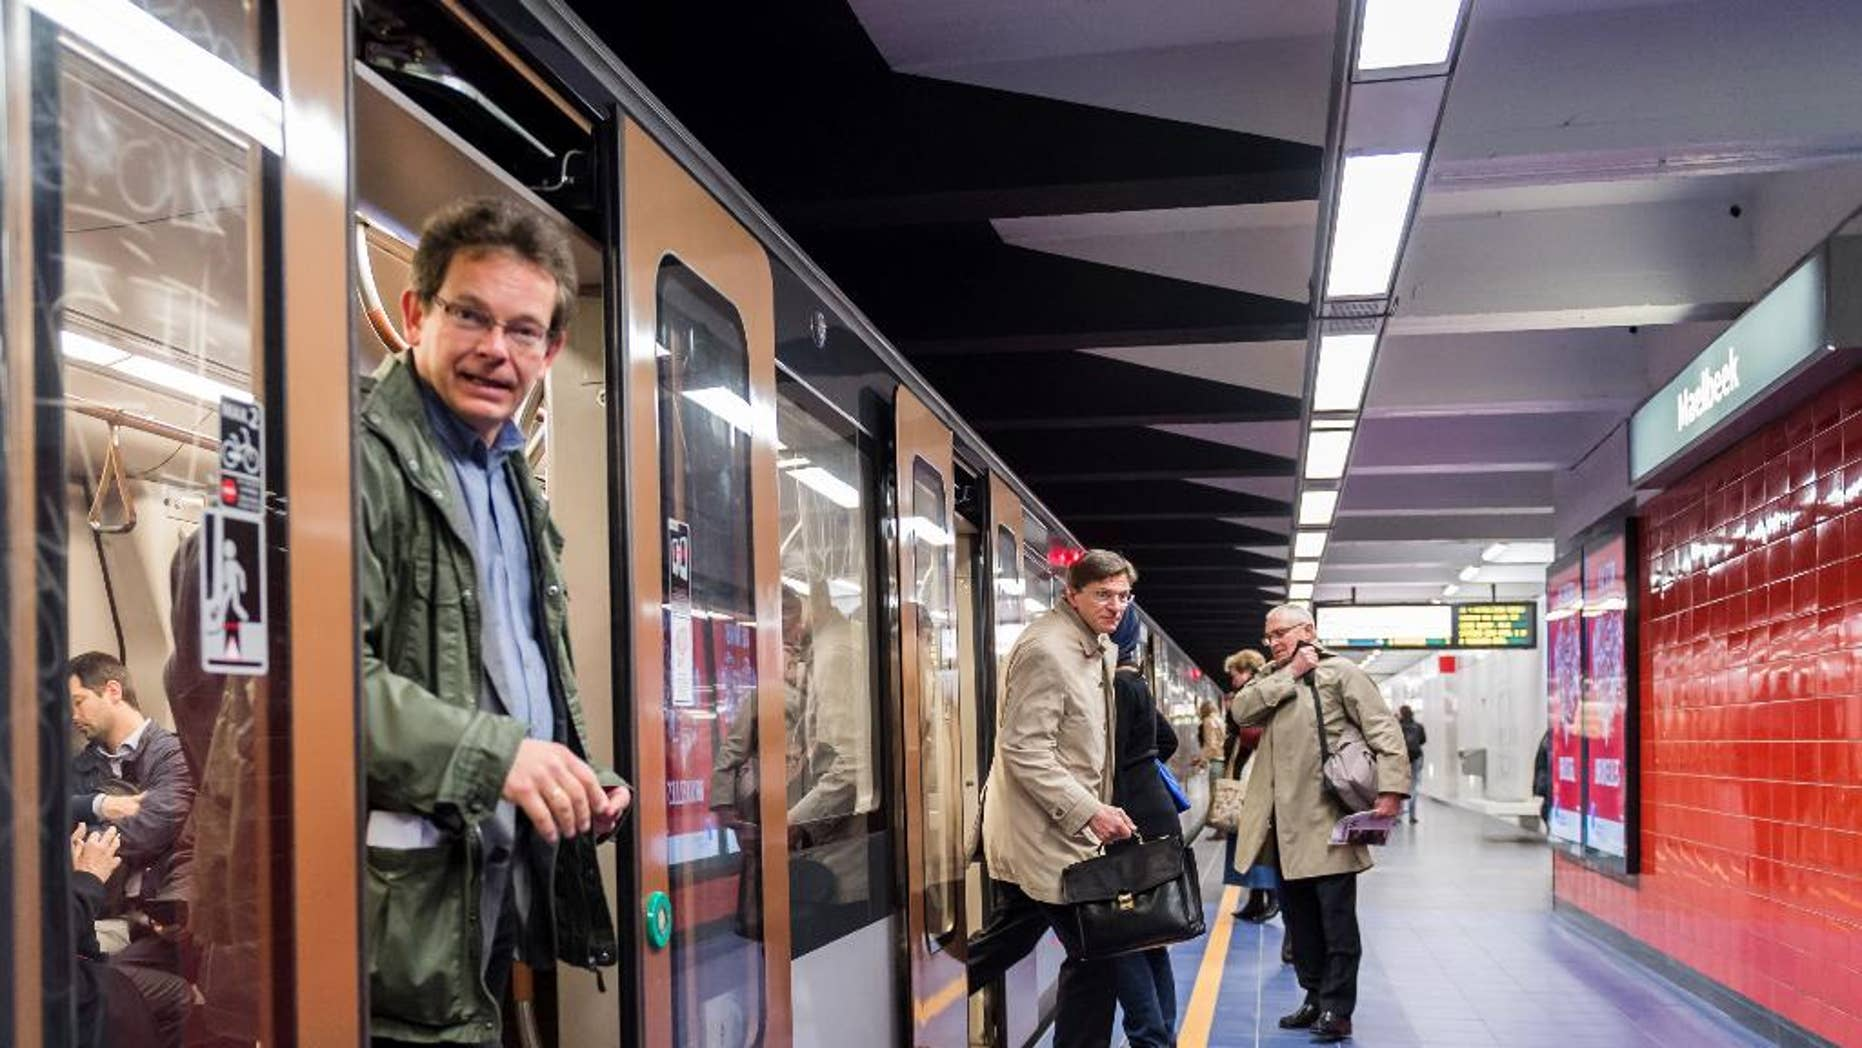 Commuters arrive at Maelbeek metro station in Brussels on Monday April 25, 2016. For the first time since the March 22 attacks, all of the Brussels metro lines are operating a full schedule again. The Maelbeek station reopened after being closed more than a month due to the terrorist bombing that killed 16 people and wounded many more.  (AP Photo/Geert Vanden Wijngaert)